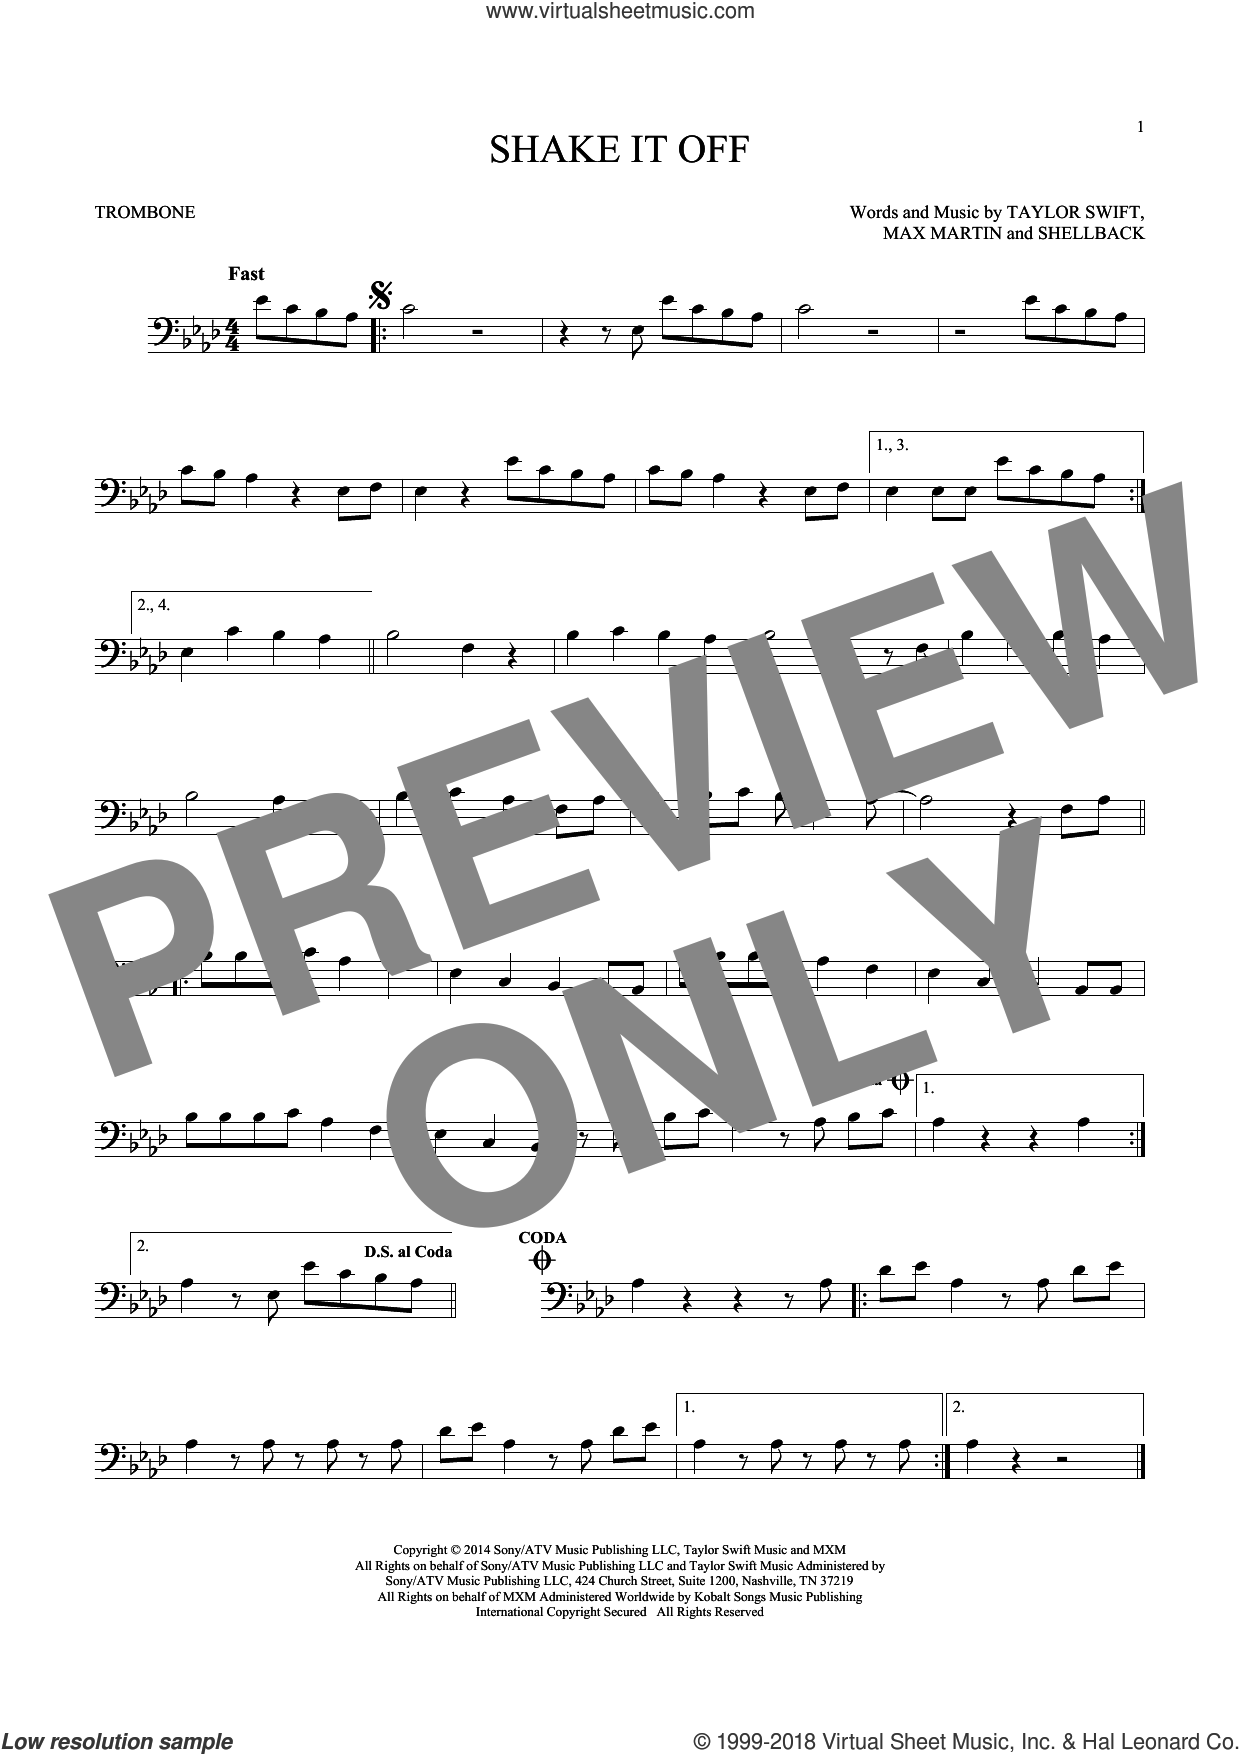 Shake It Off sheet music for trombone solo by Shellback, Johan Schuster, Max Martin and Taylor Swift. Score Image Preview.